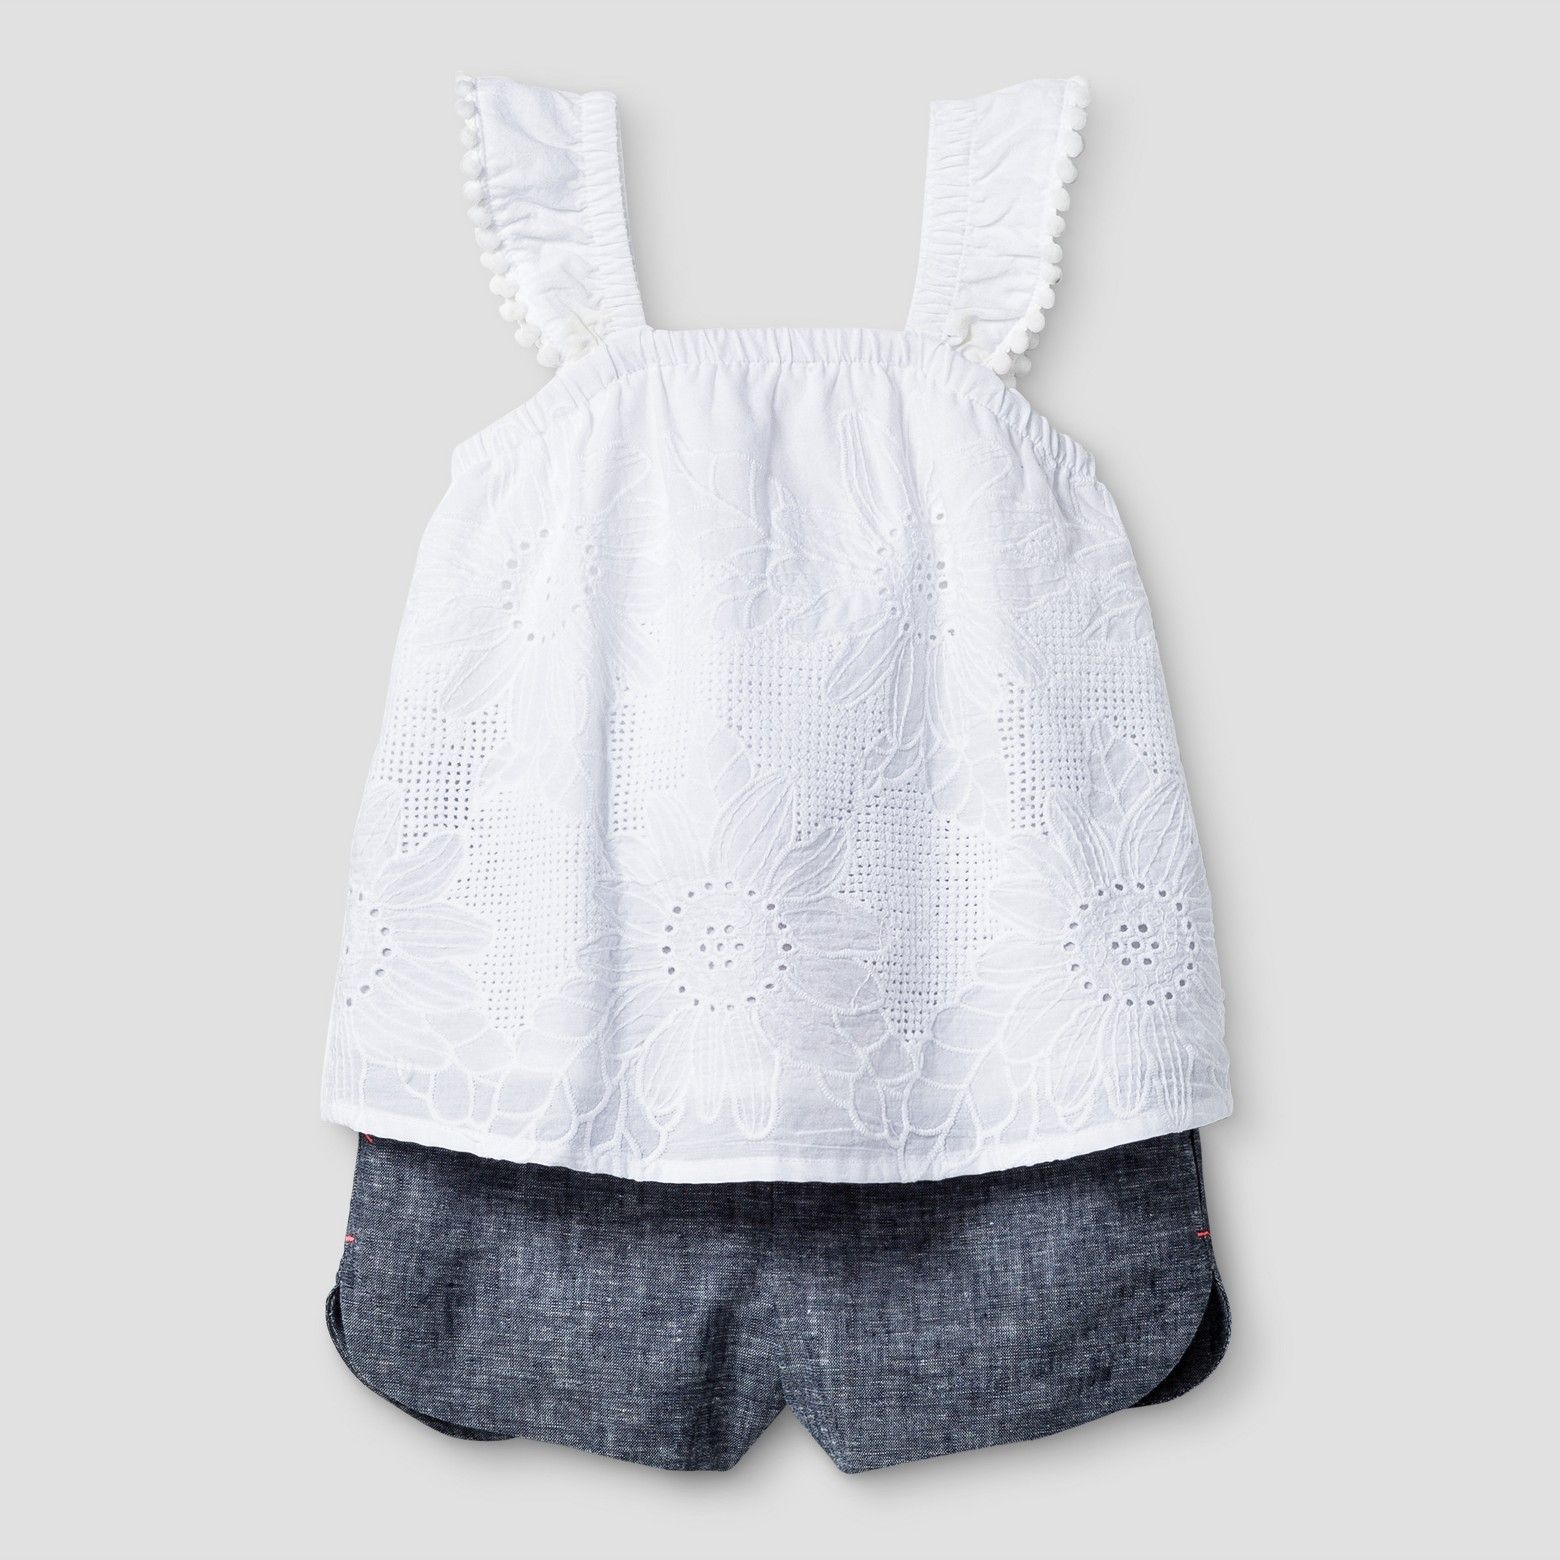 8a9e15dd7 Baby Girl's white top and denim shorts from Cat Jack | baby girl ...